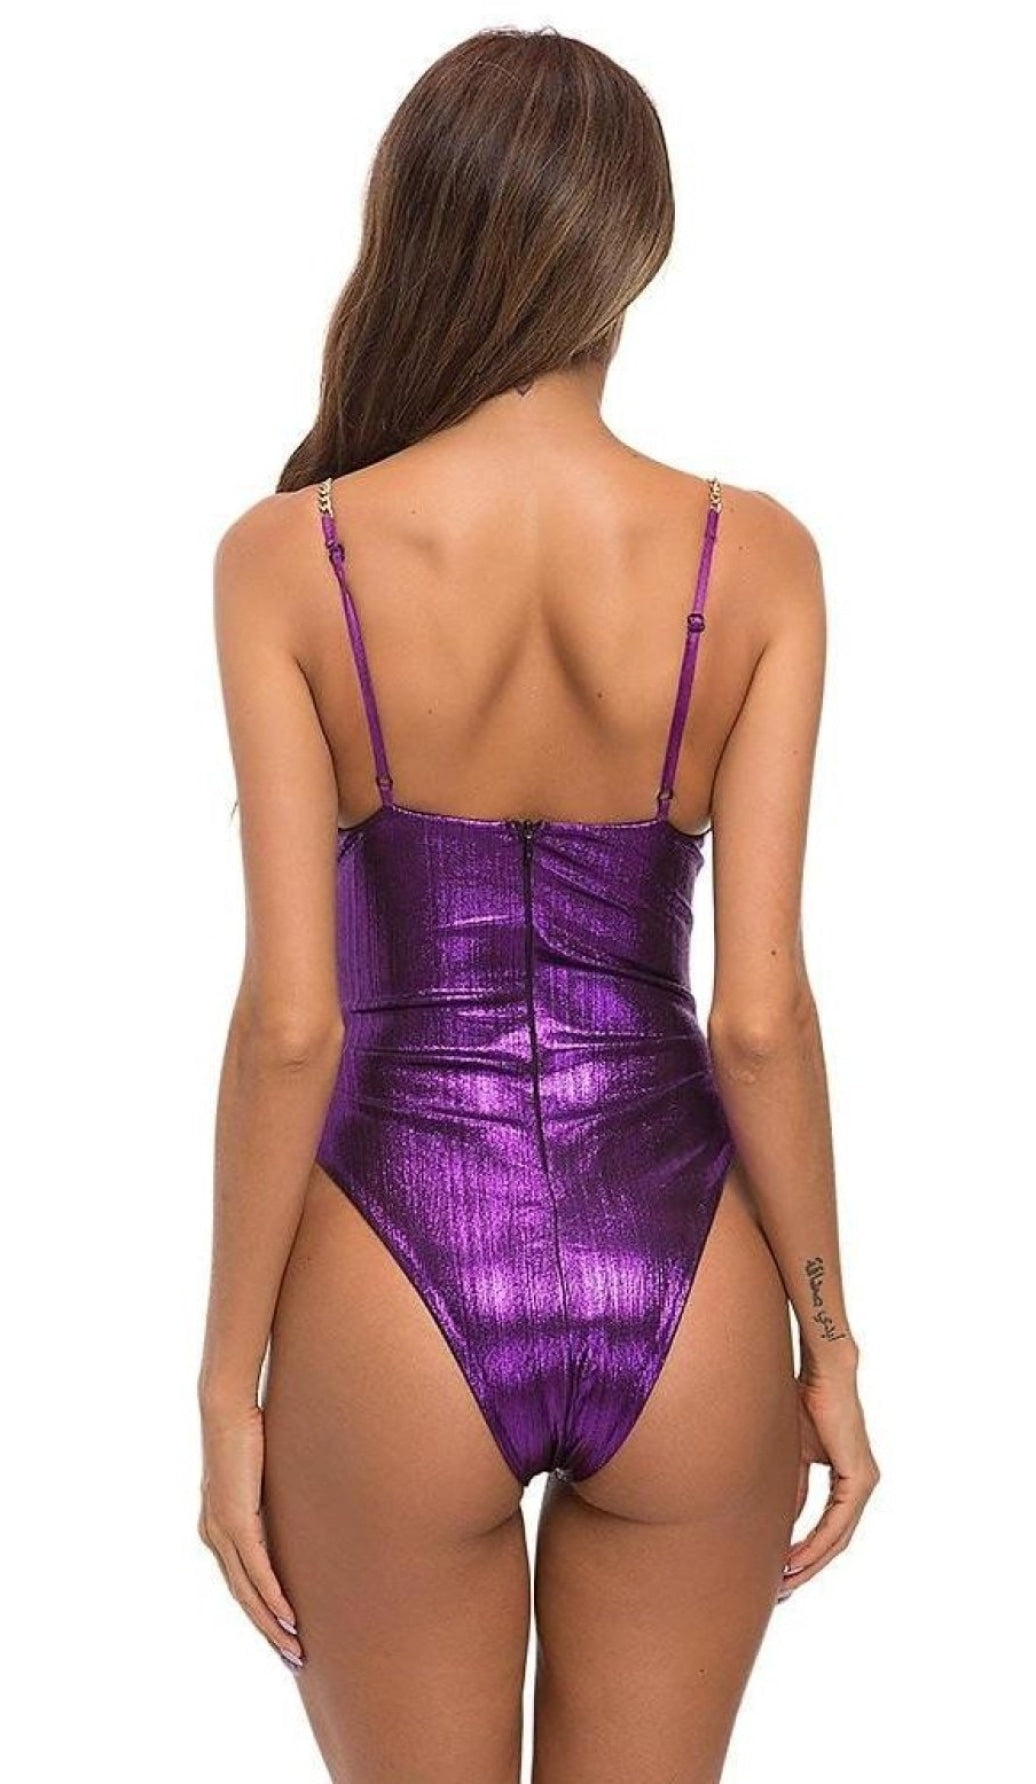 'MYKONOS' Metallic Gold Chain Bodysuit -  Purple